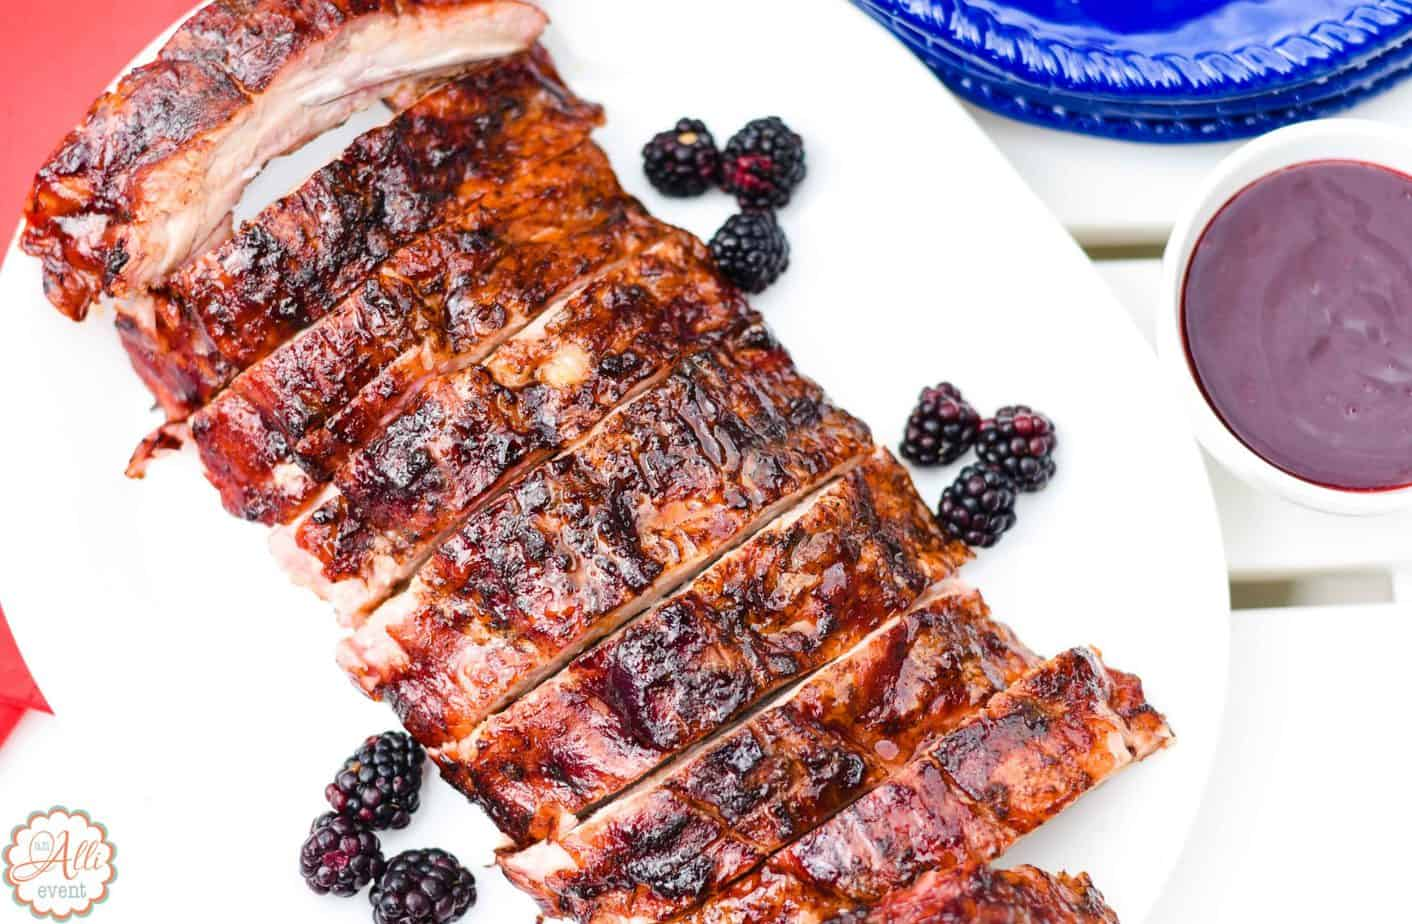 How to Make Yummy Blackberry Glazed Grilled Ribs